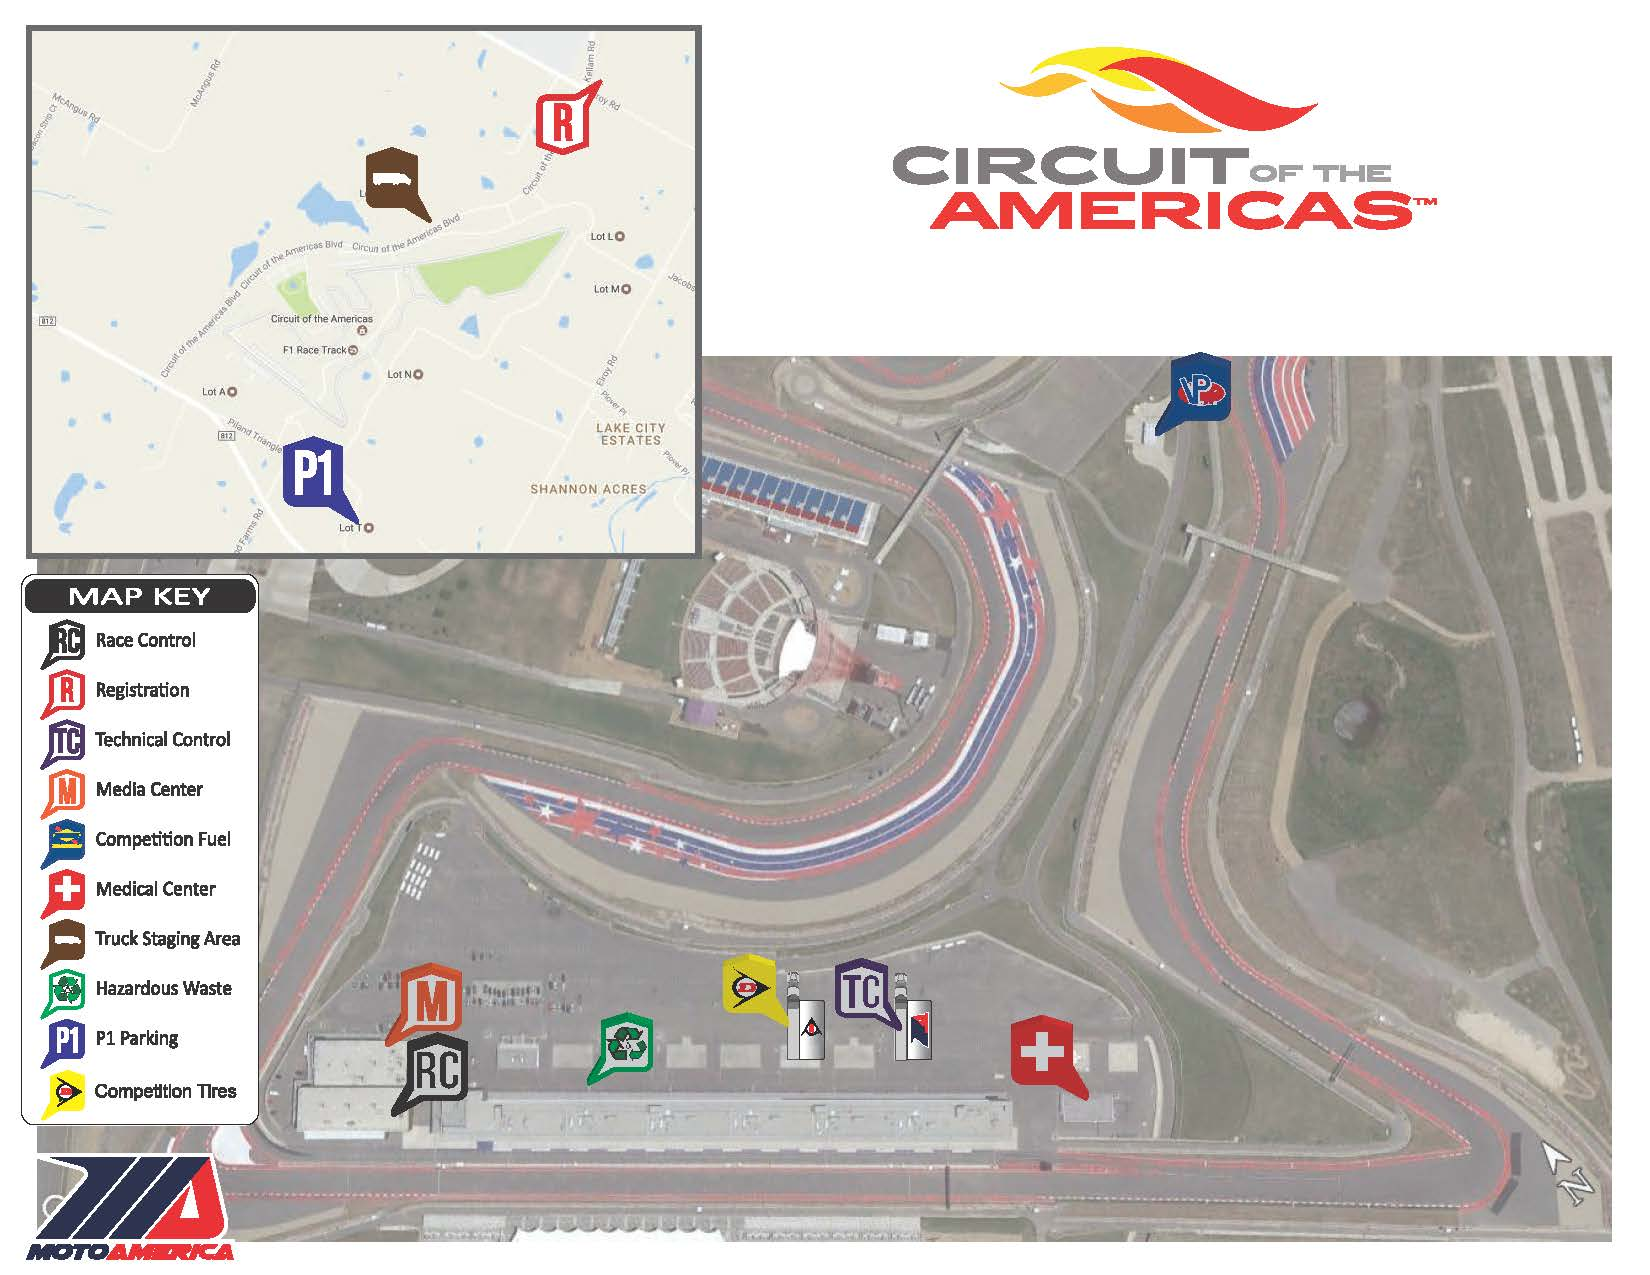 2019 COTA | MotoAmerica Registration Circuit Of The Americas Map on